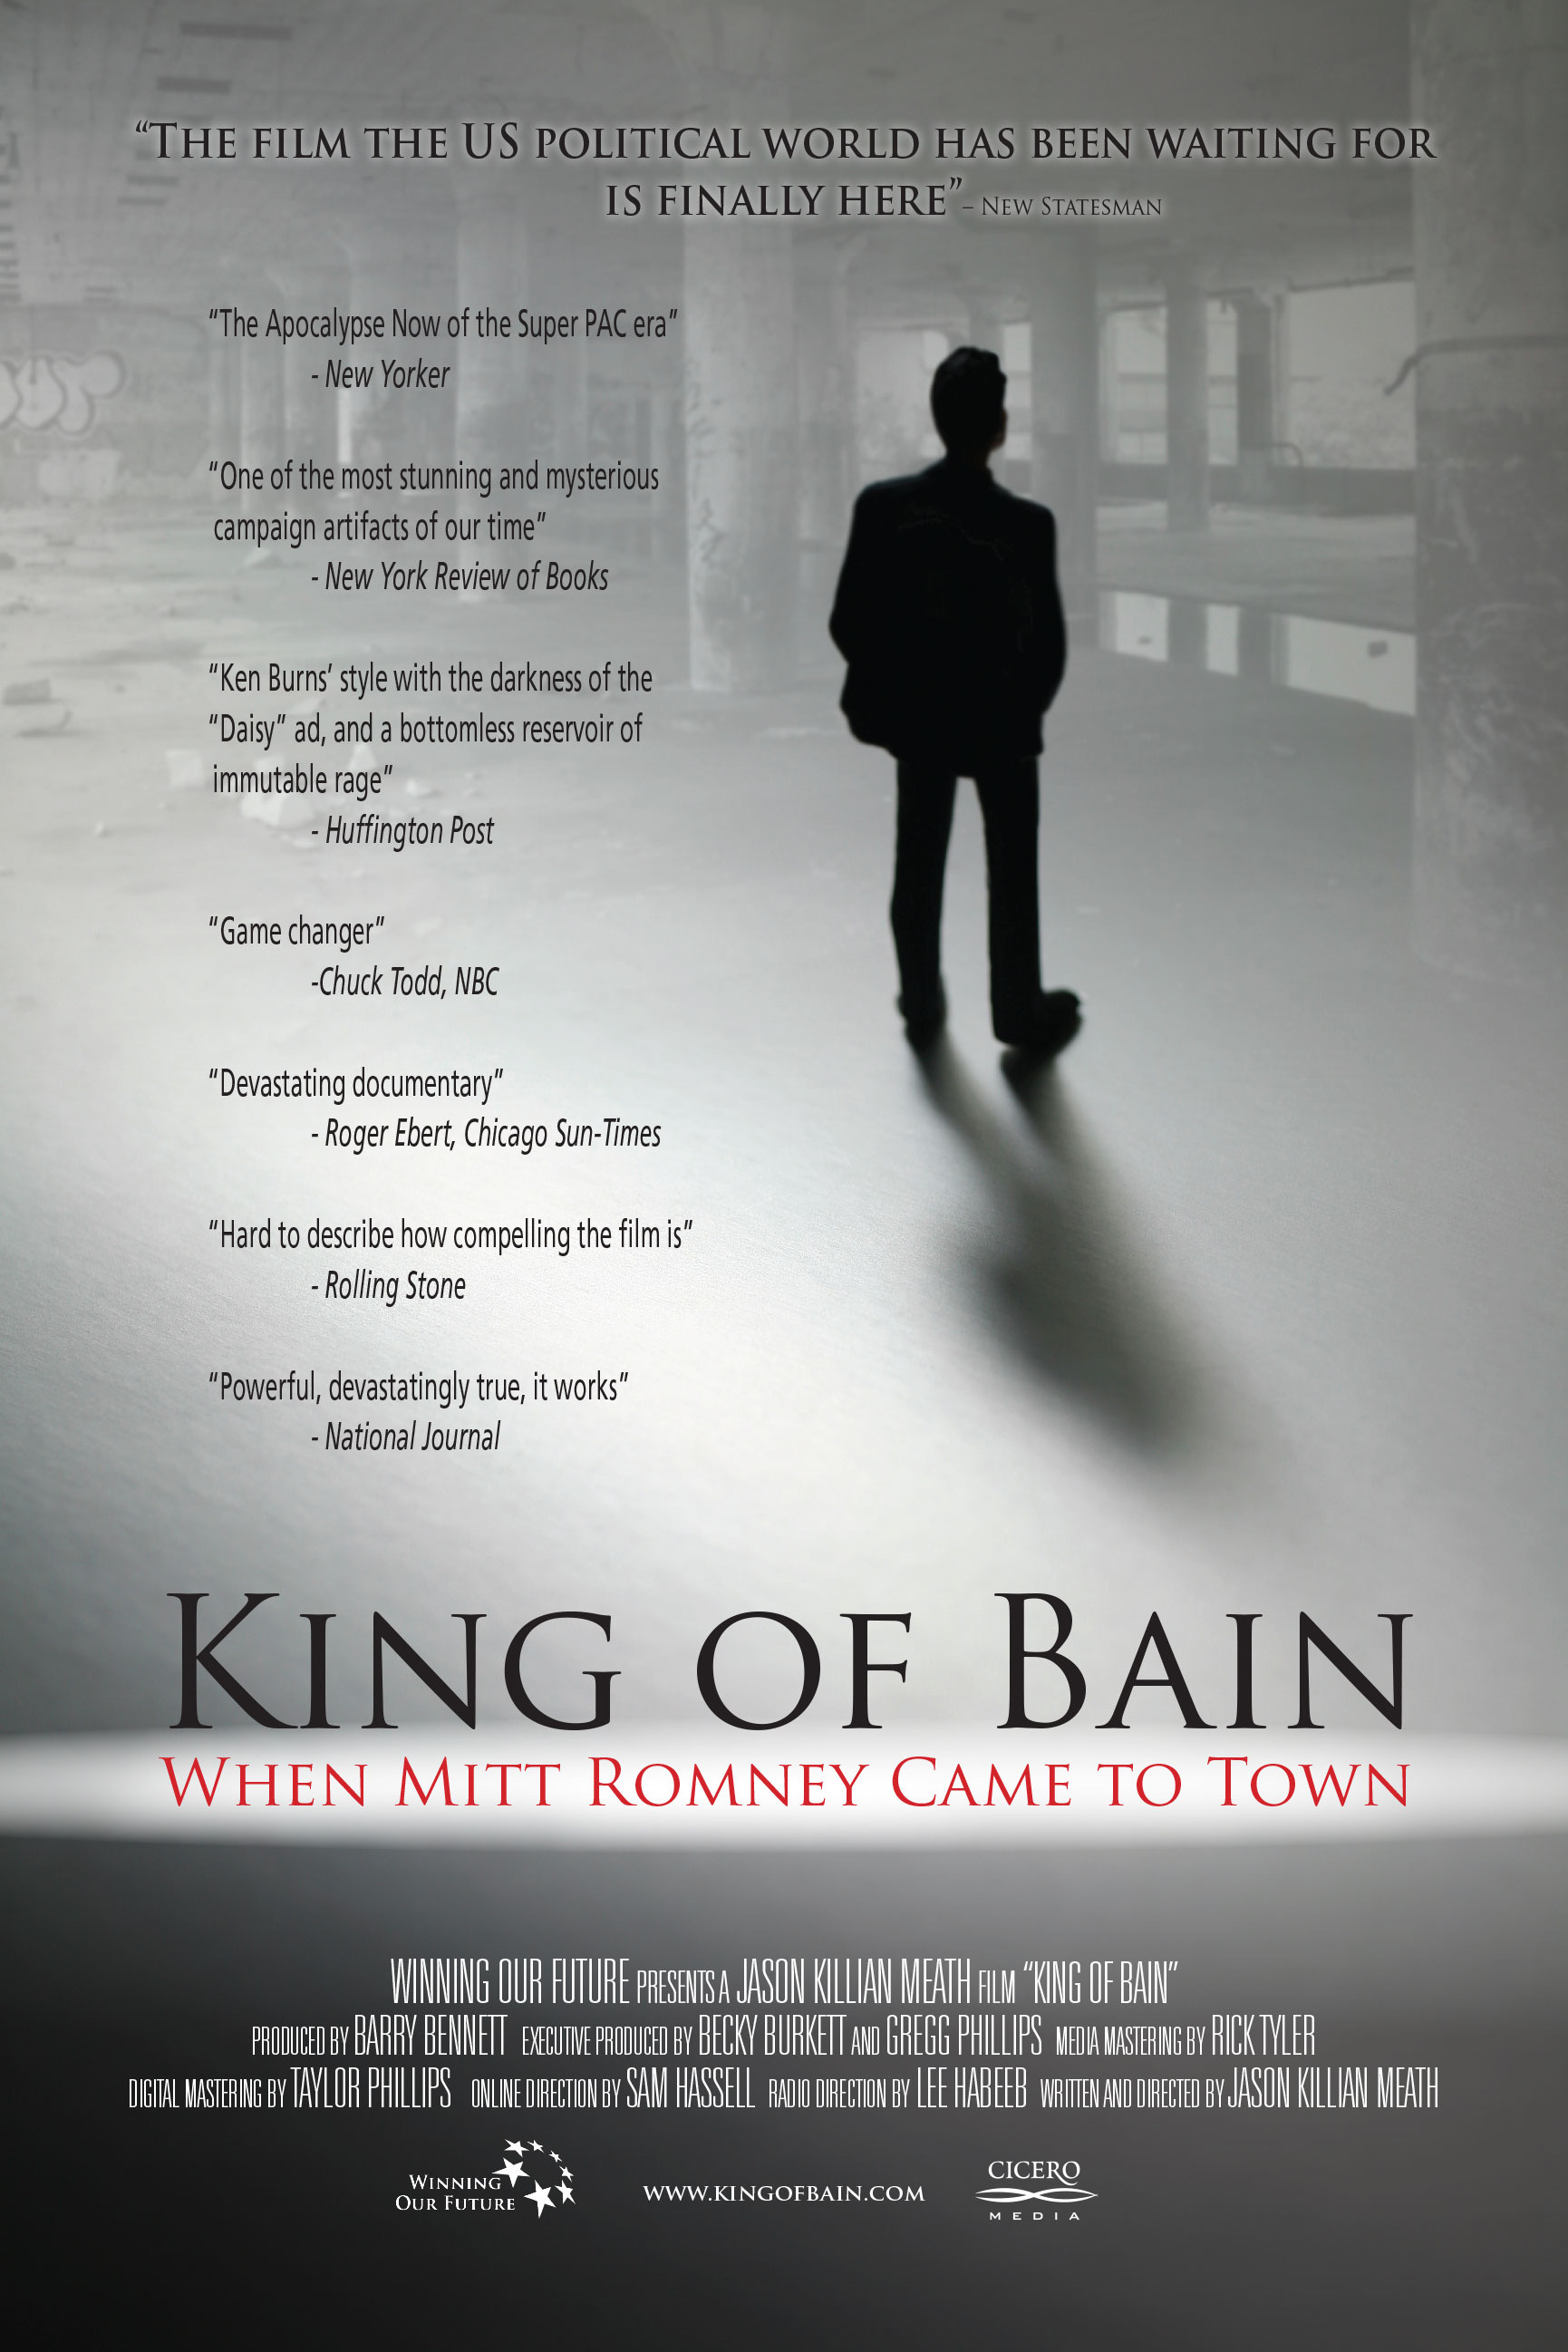 King-of-Bain-11-HIGH-RES.jpeg